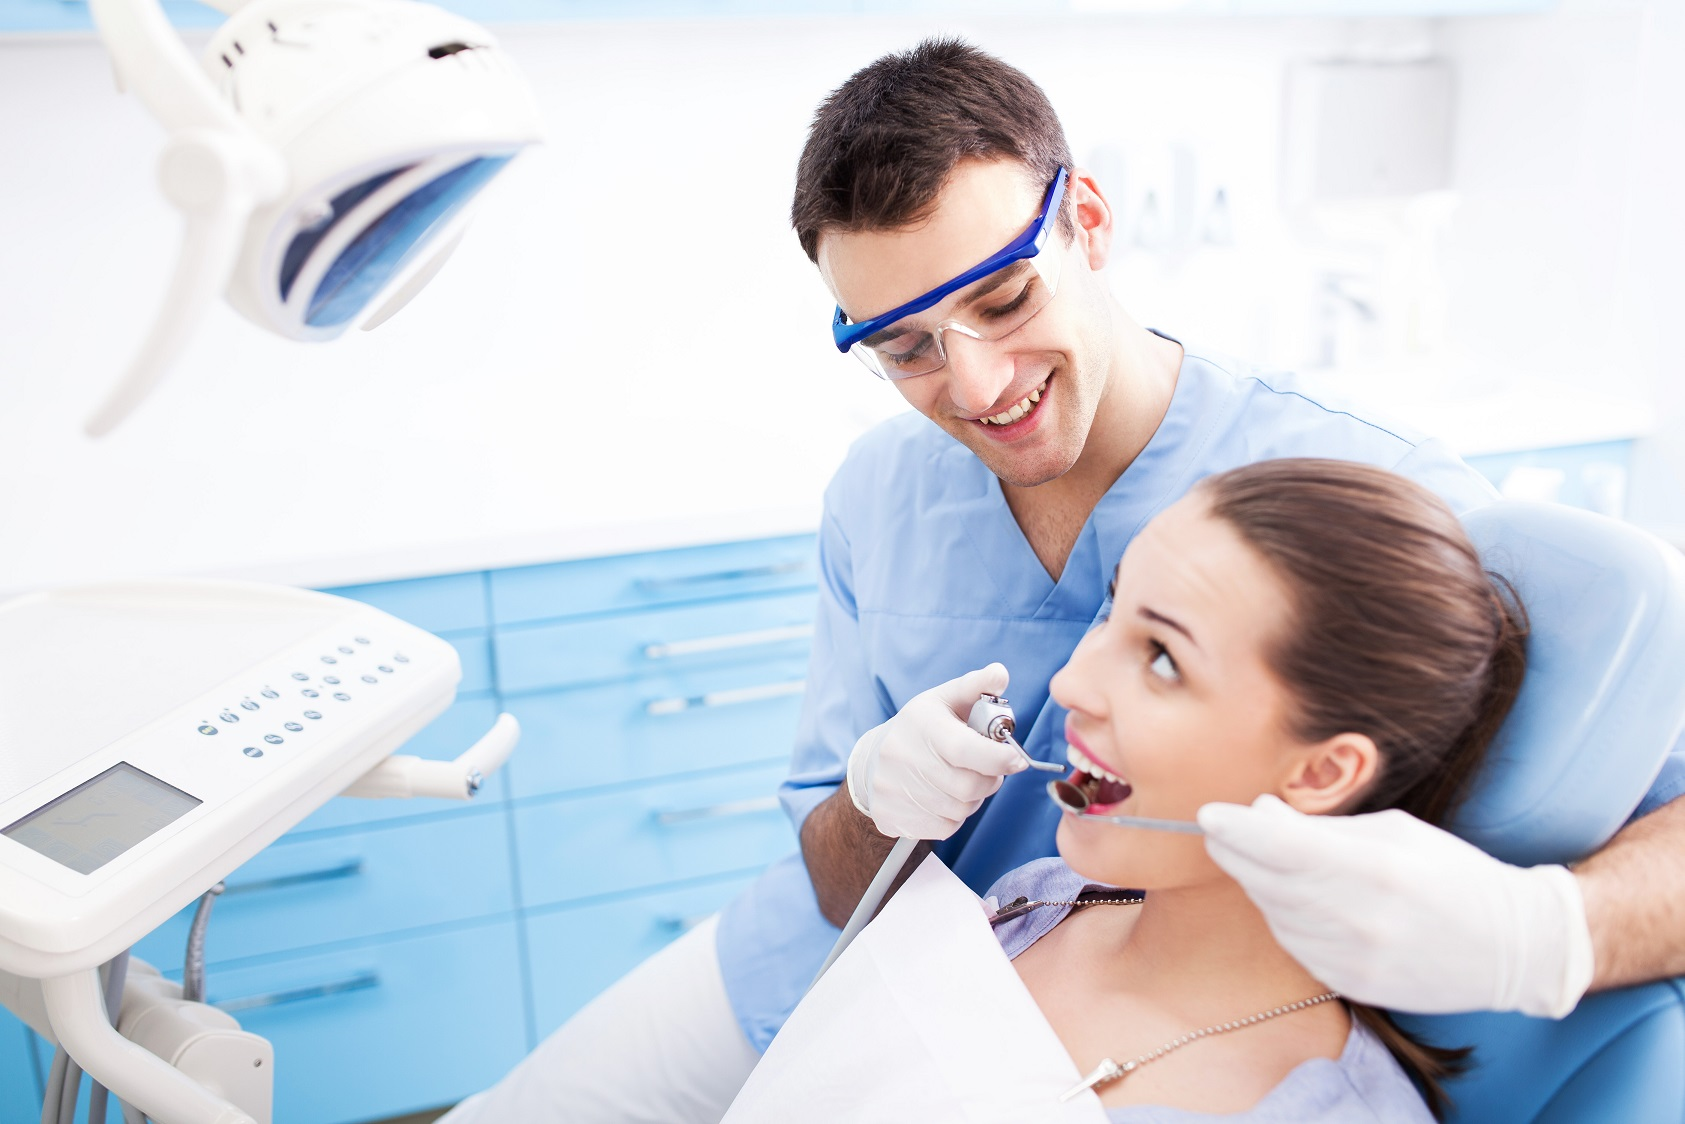 Save Your Money With Affordable Dental Insurance Plans